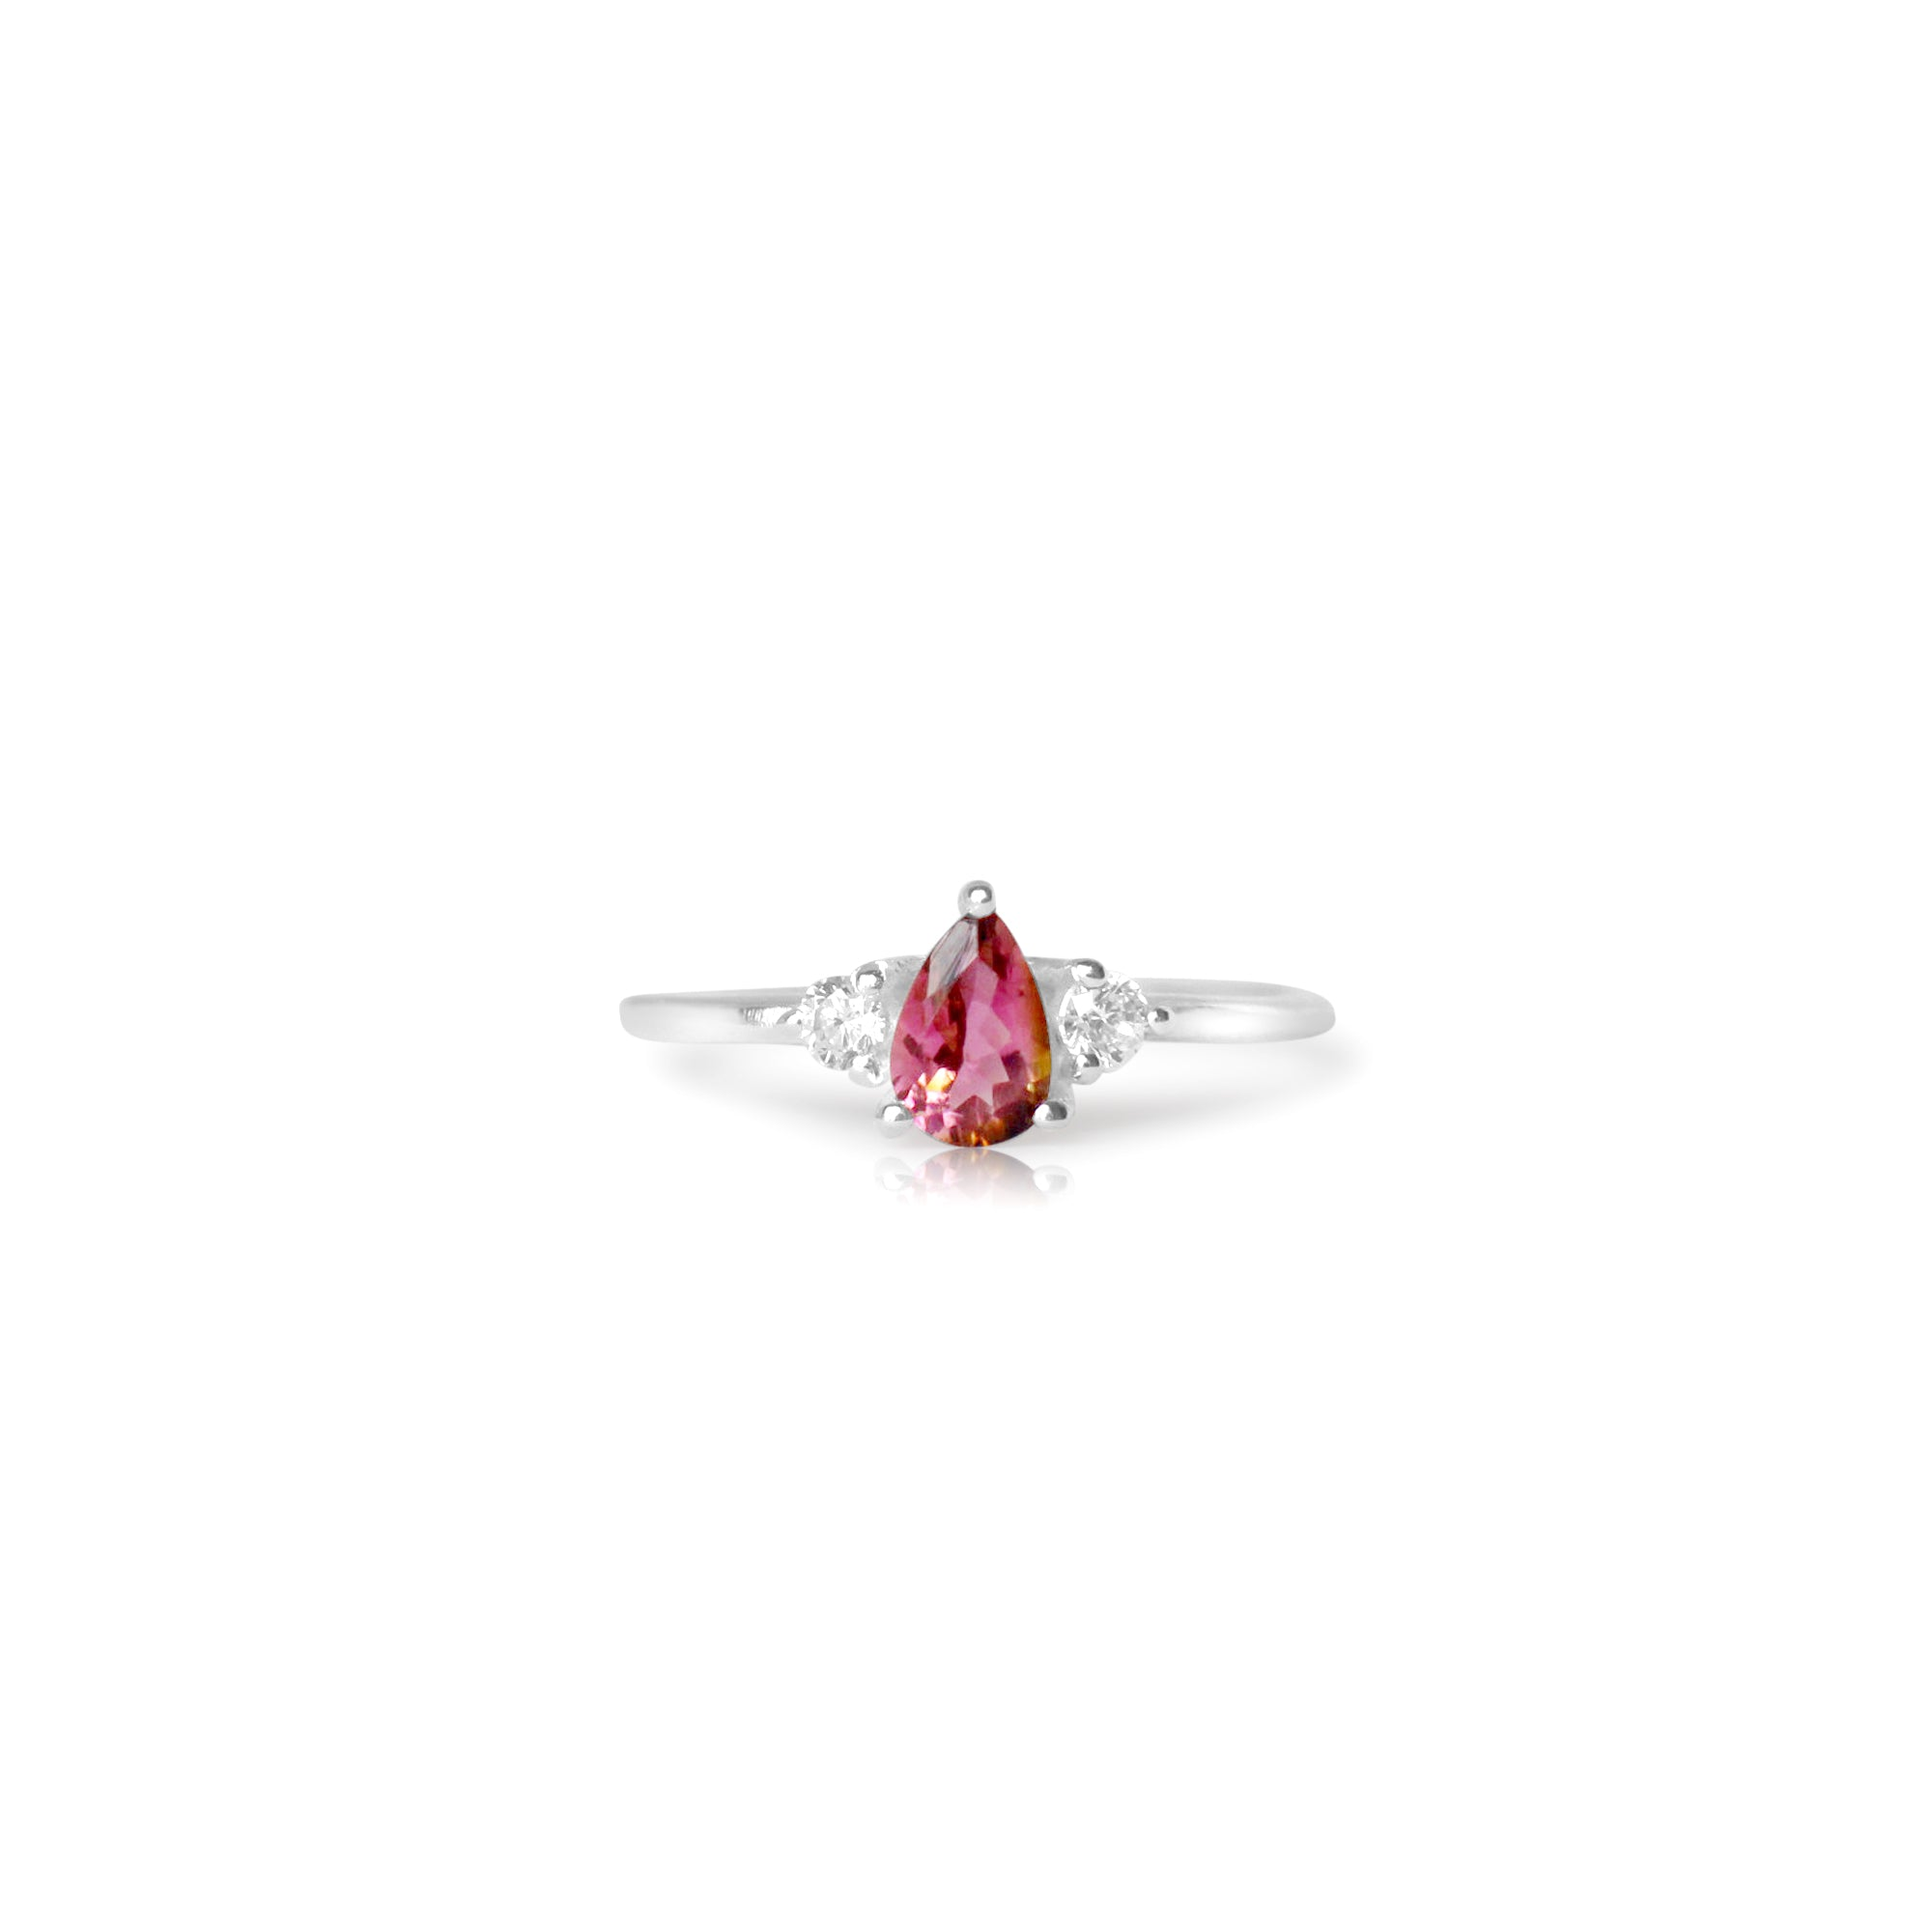 925 Silver Luxe Series Ring - Yumi (Pink Tourmaline)